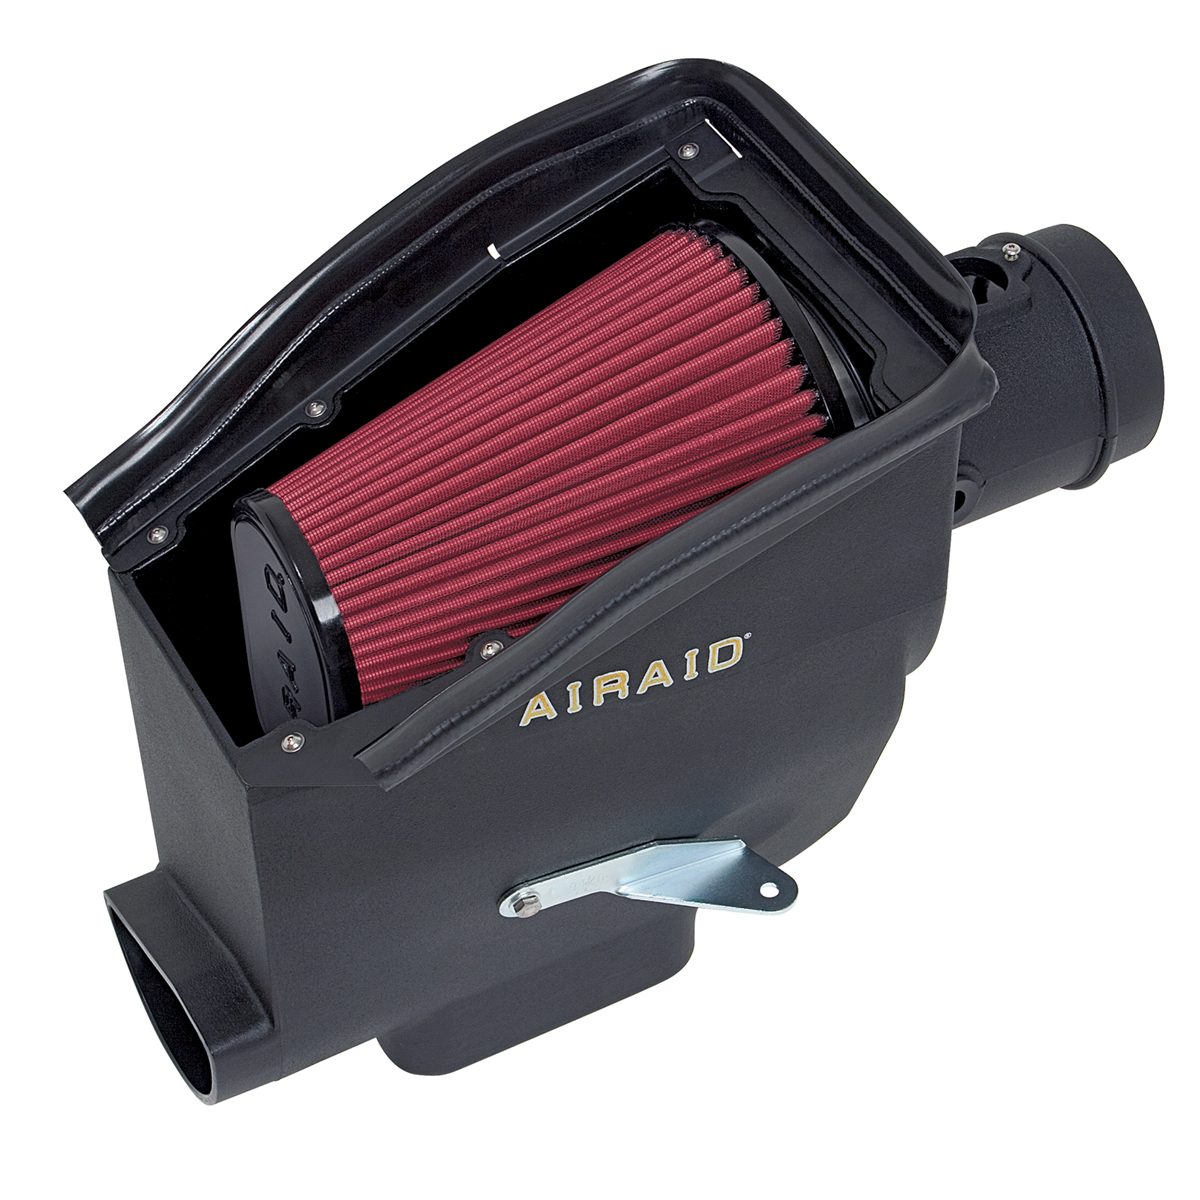 Airaid 2008-2010 Cold Air Intake # 400-214-1